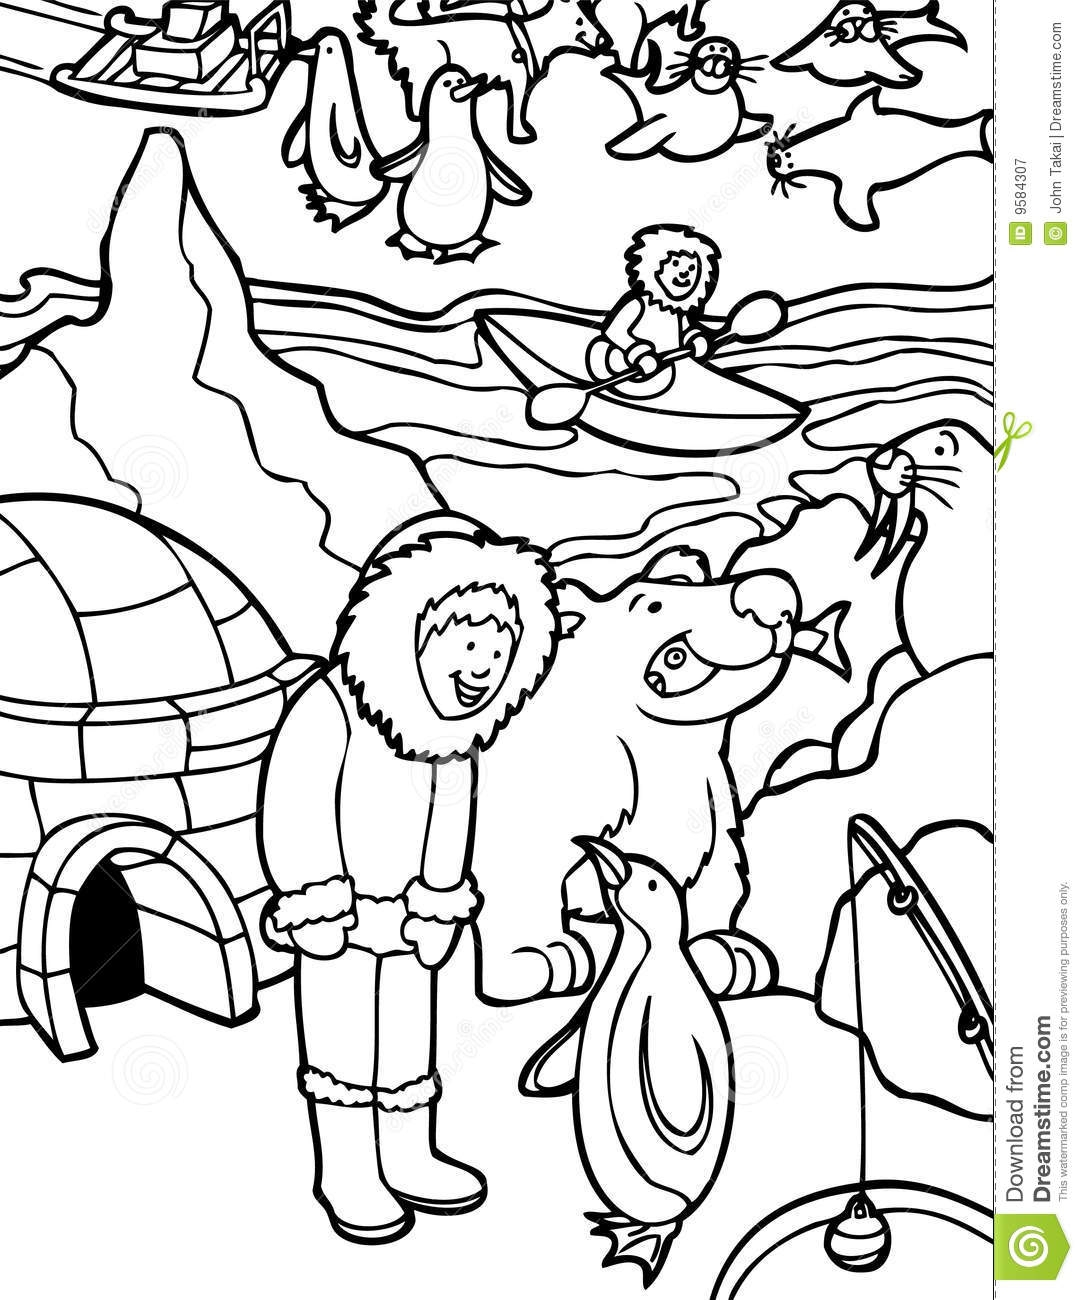 igloo coloring page - royalty free stock photography eskimo alaska black white image